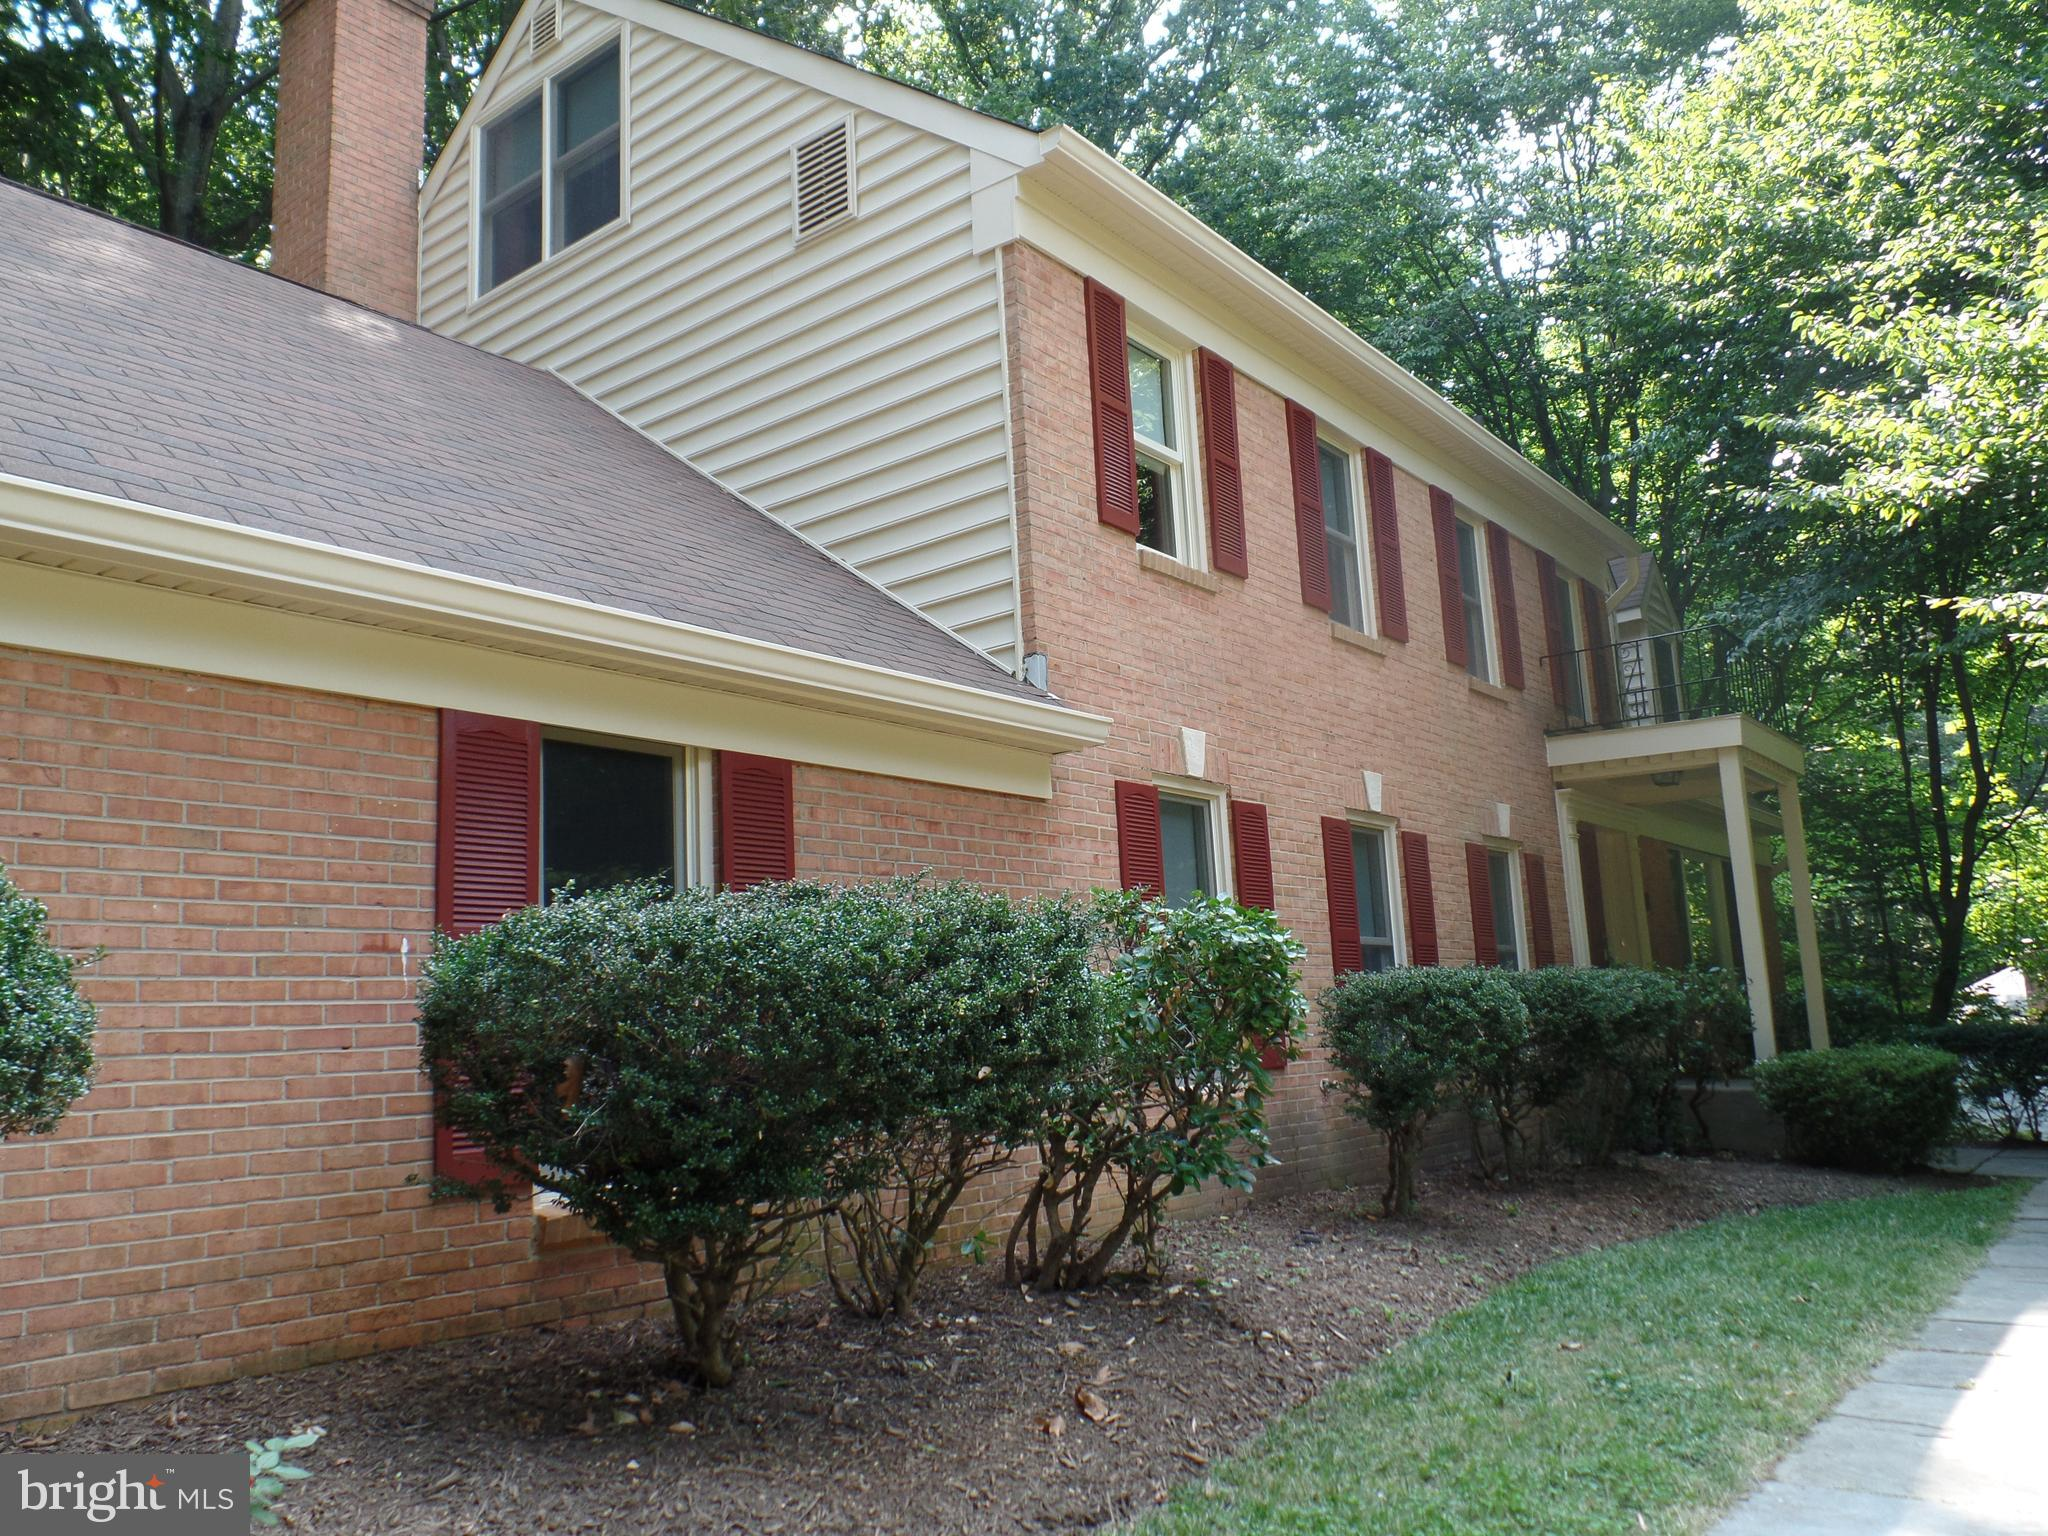 Private setting.  Fabulous 5 bedrooms, 3,5 baths.  Den/library on 1st floor.  Huge loft above the master bedroom.  Walk out basement with fireplace, 5th bedroom and bath and a large laundry room with lot of storage.  Enjoy the deck off of the family room.  Applications processed quickly.